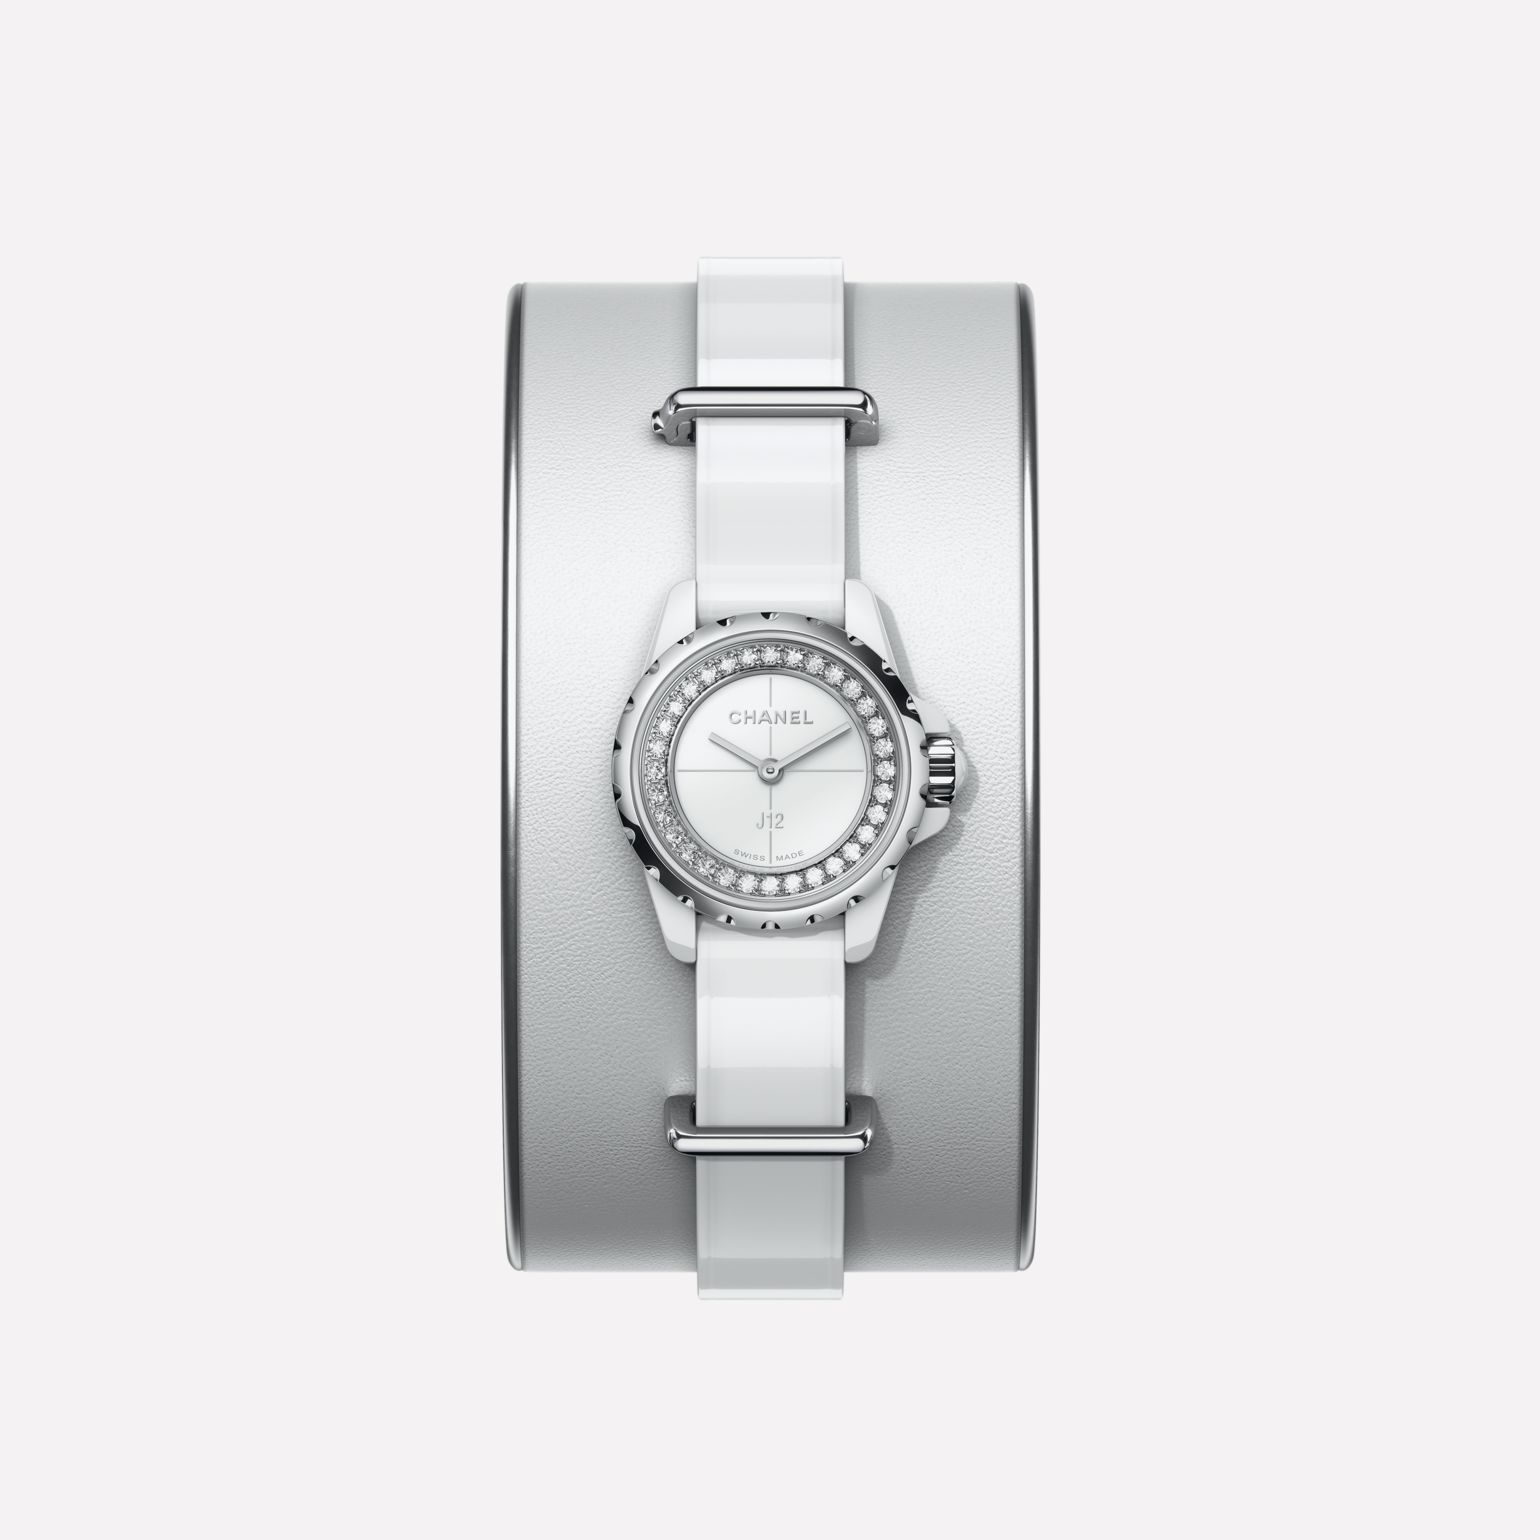 J12·XS Watch, 19 mm Small white leather cuff, white highly resistant ceramic and steel, brilliant-cut diamond flange